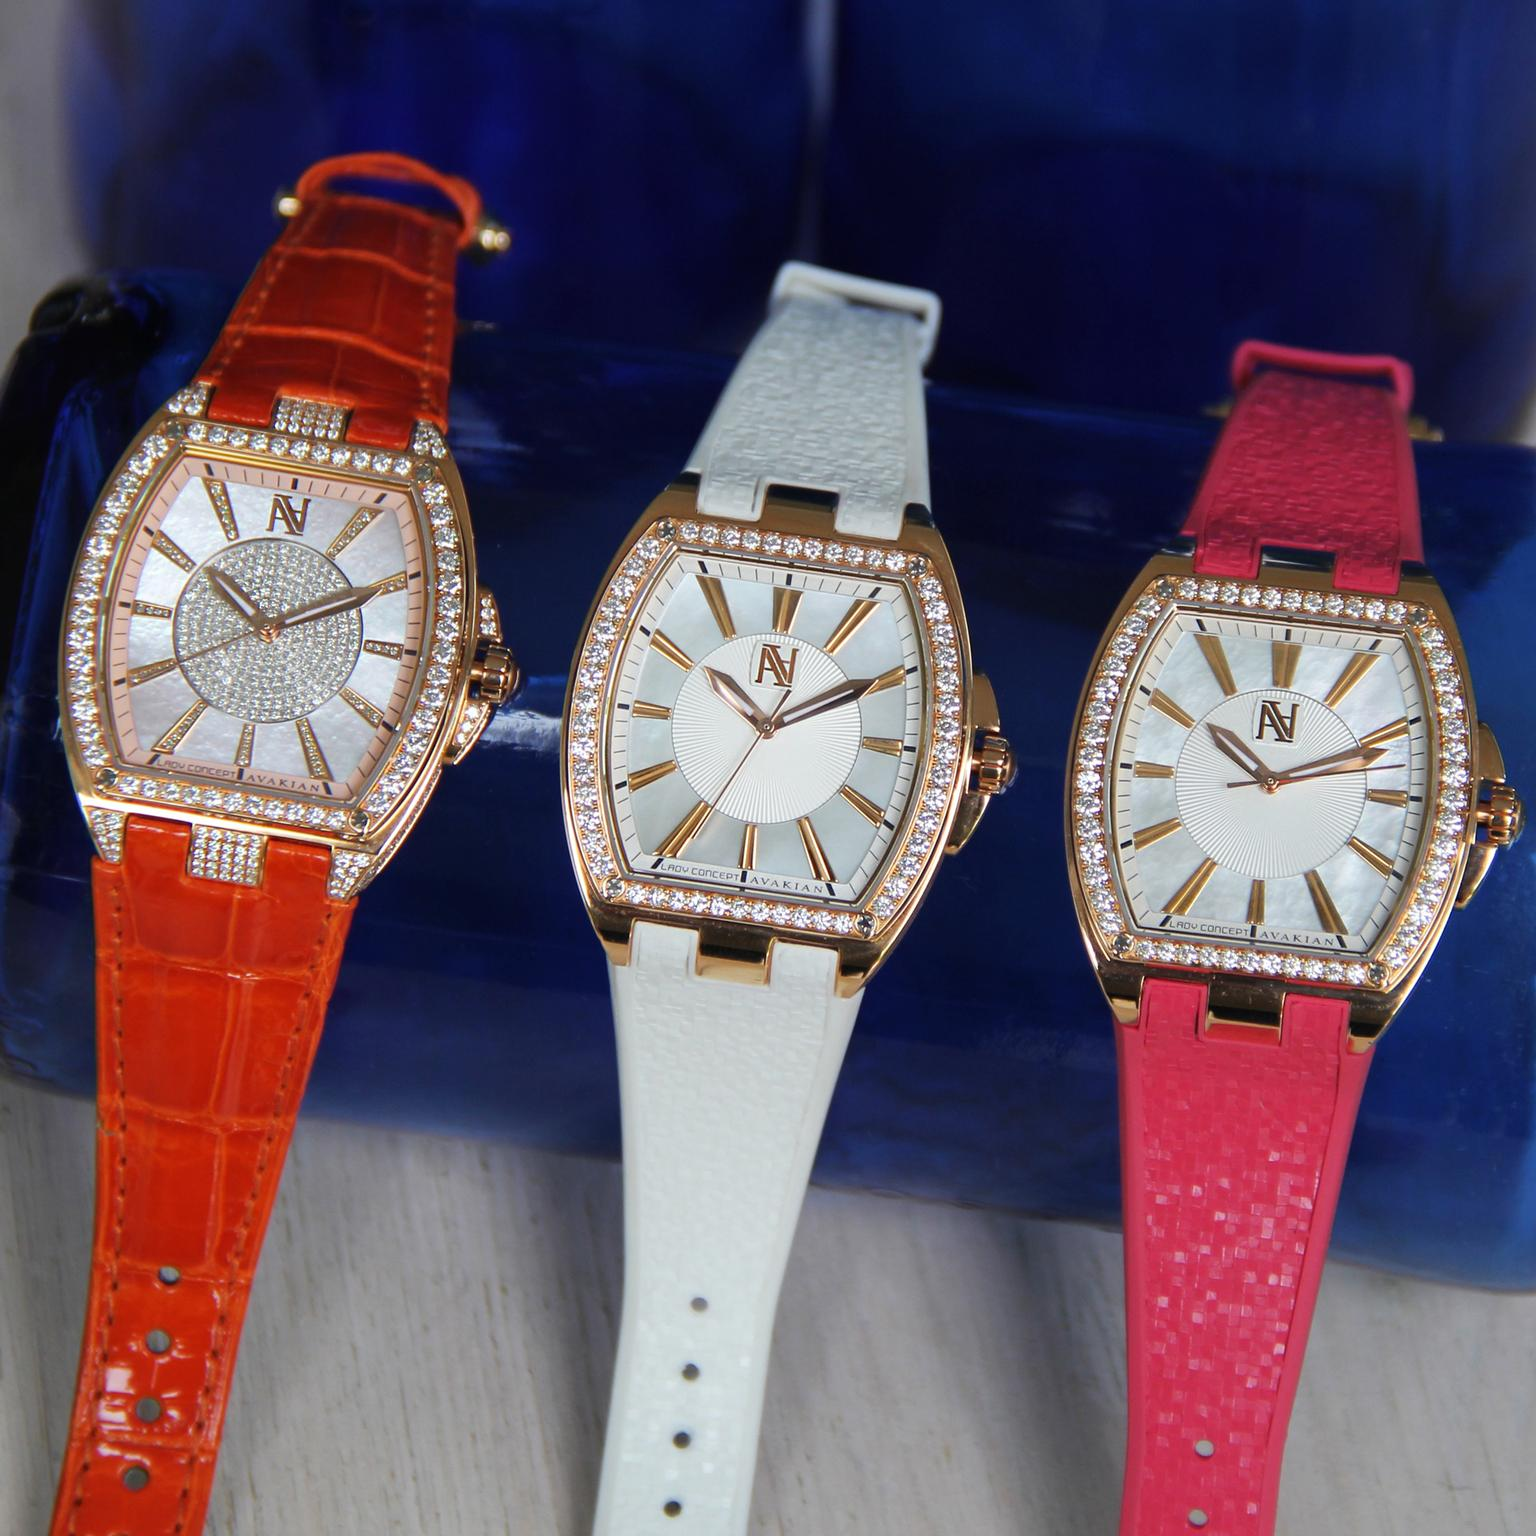 Avakian Lady Concept watches